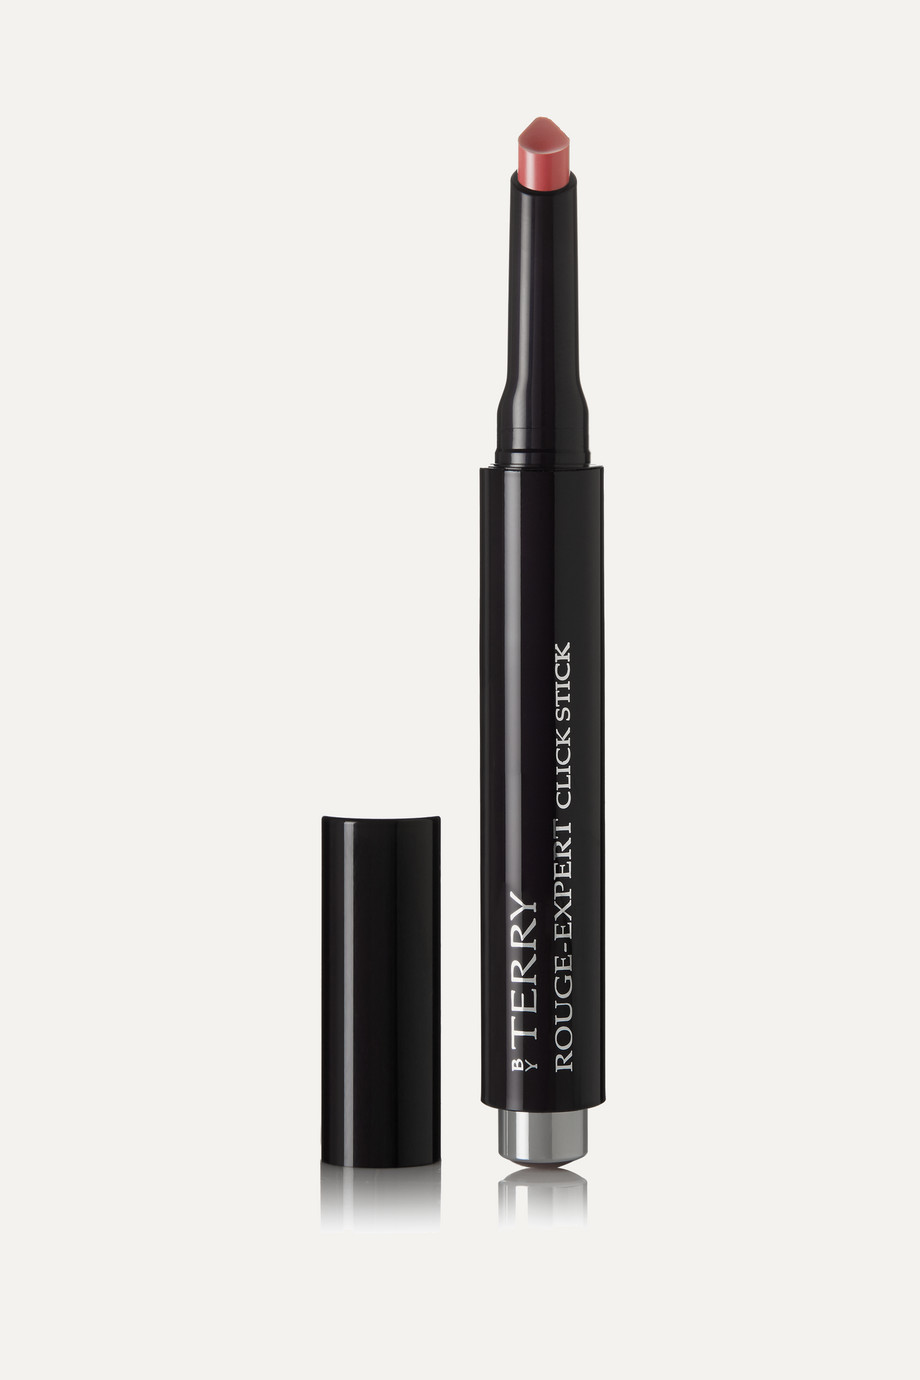 BY TERRY Rouge-Expert Click Stick Hybrid Lipstick - Naked Nectar 12